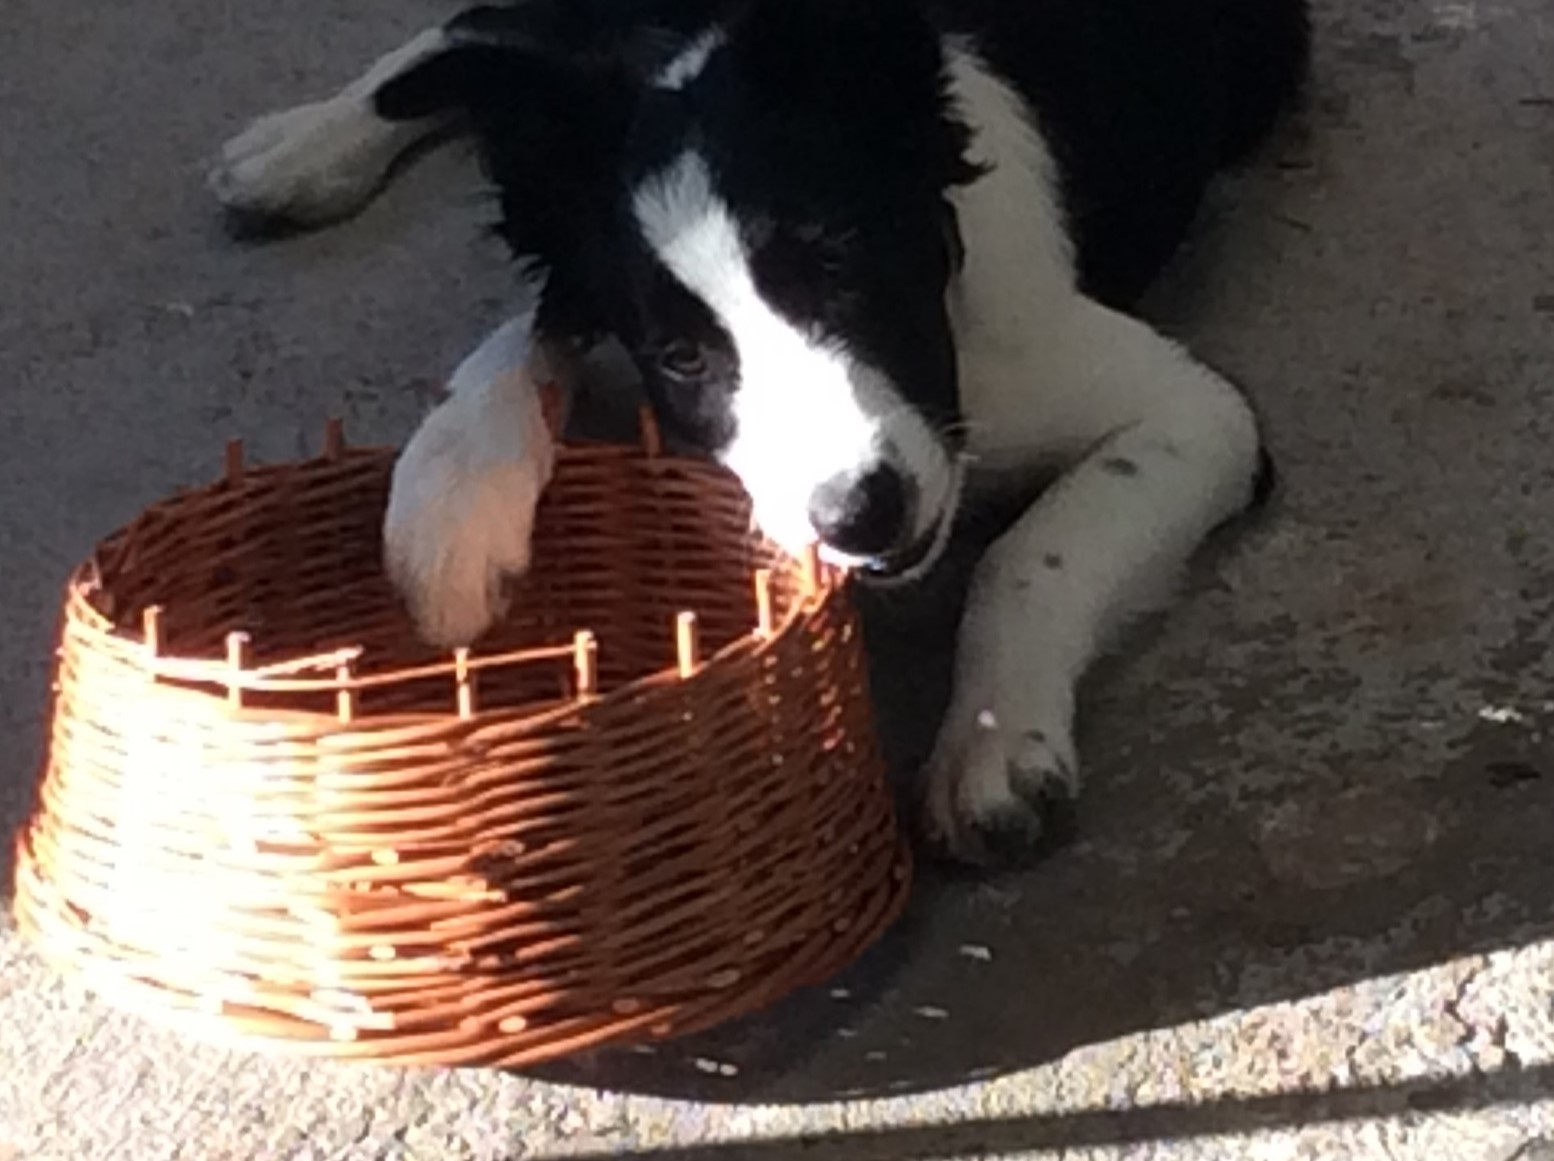 Joey-and-his-basket